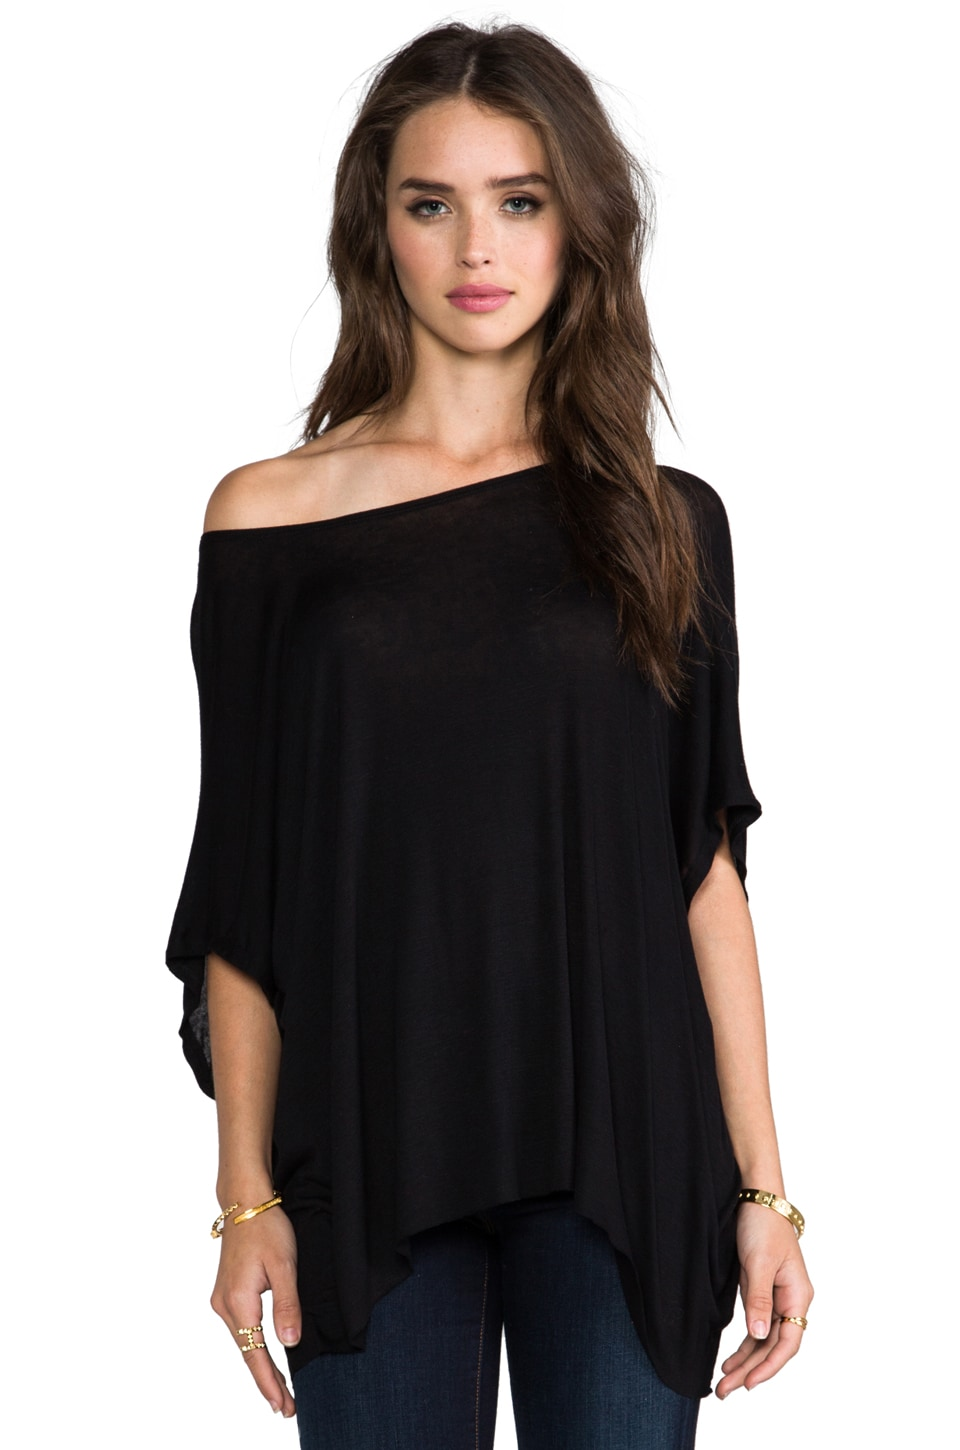 DAYDREAMER Oversized Tee with Back Zip in Black